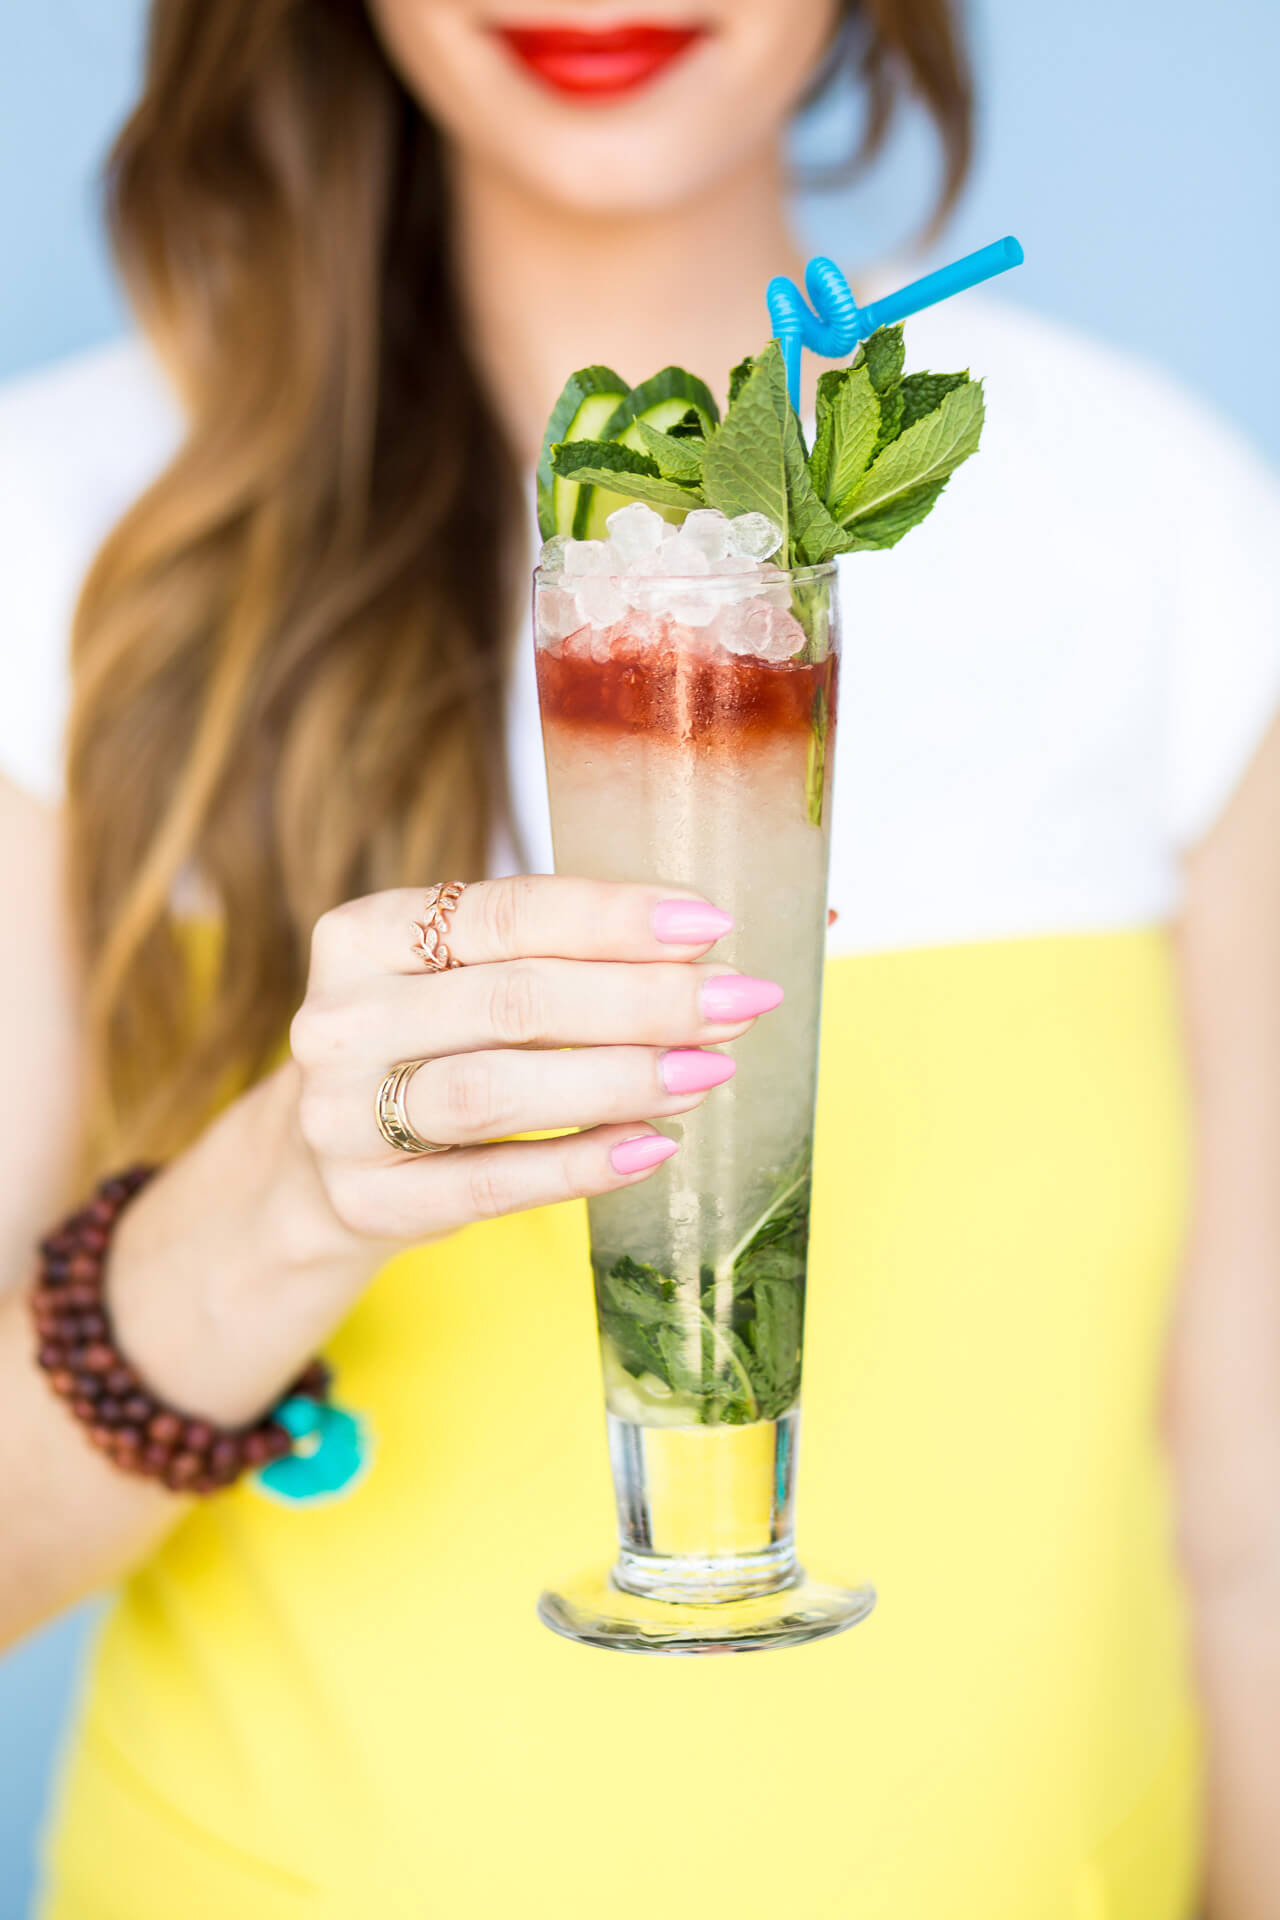 learn how to make this delicious and colorful mocktail